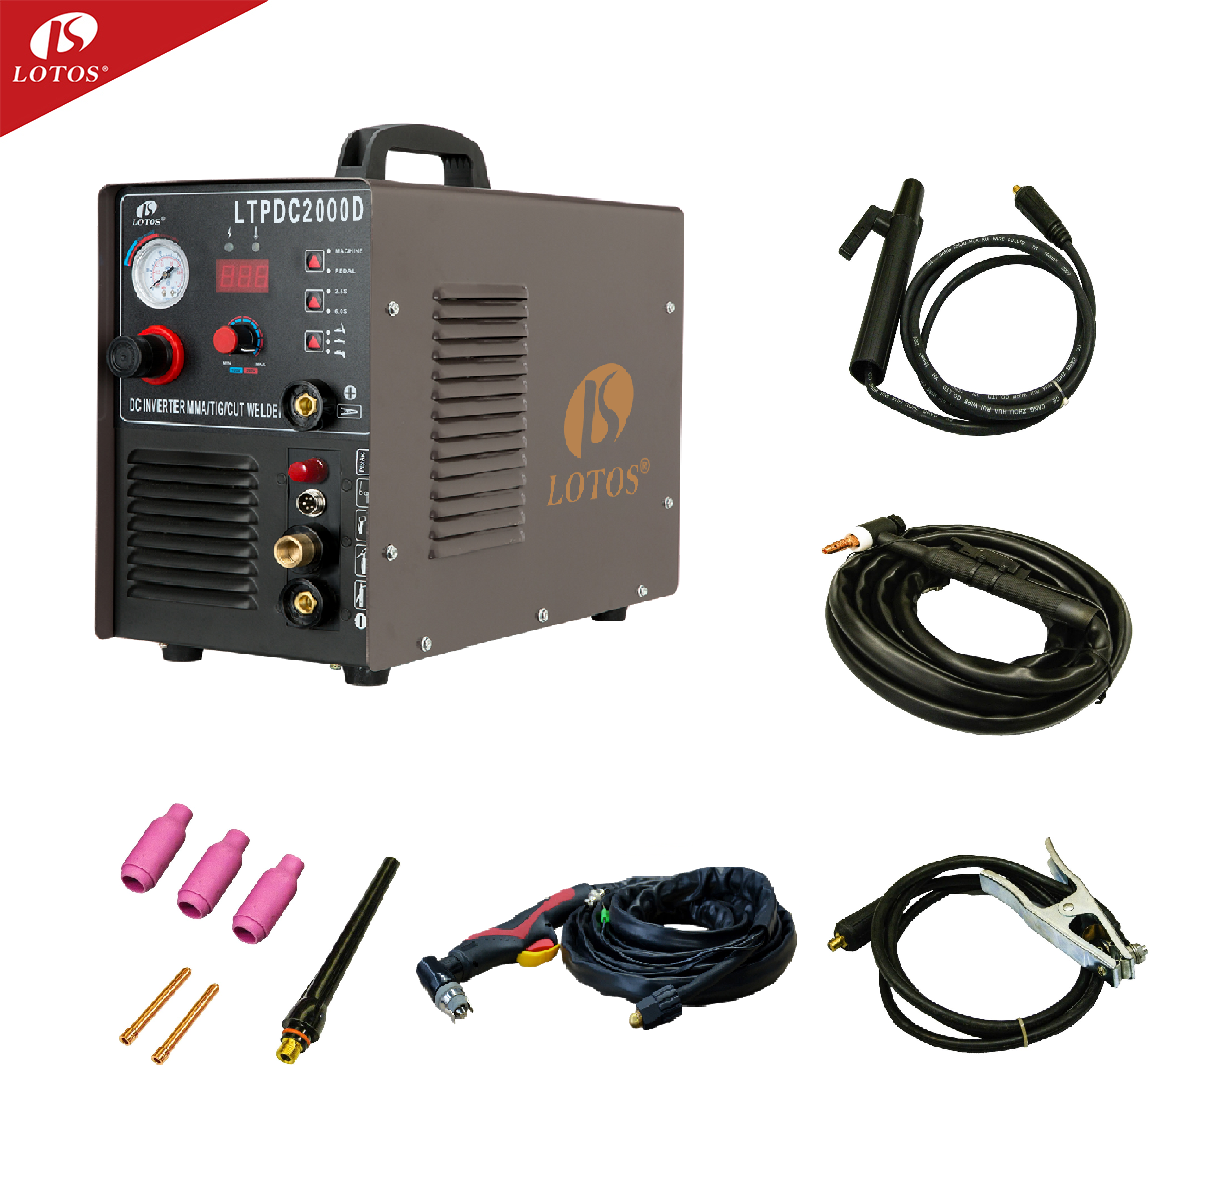 Lotos ltpdc2000d mma cut tig 3 in 1 welder plasma cutter welding machine 200 welding welders mma weld price hangzhou